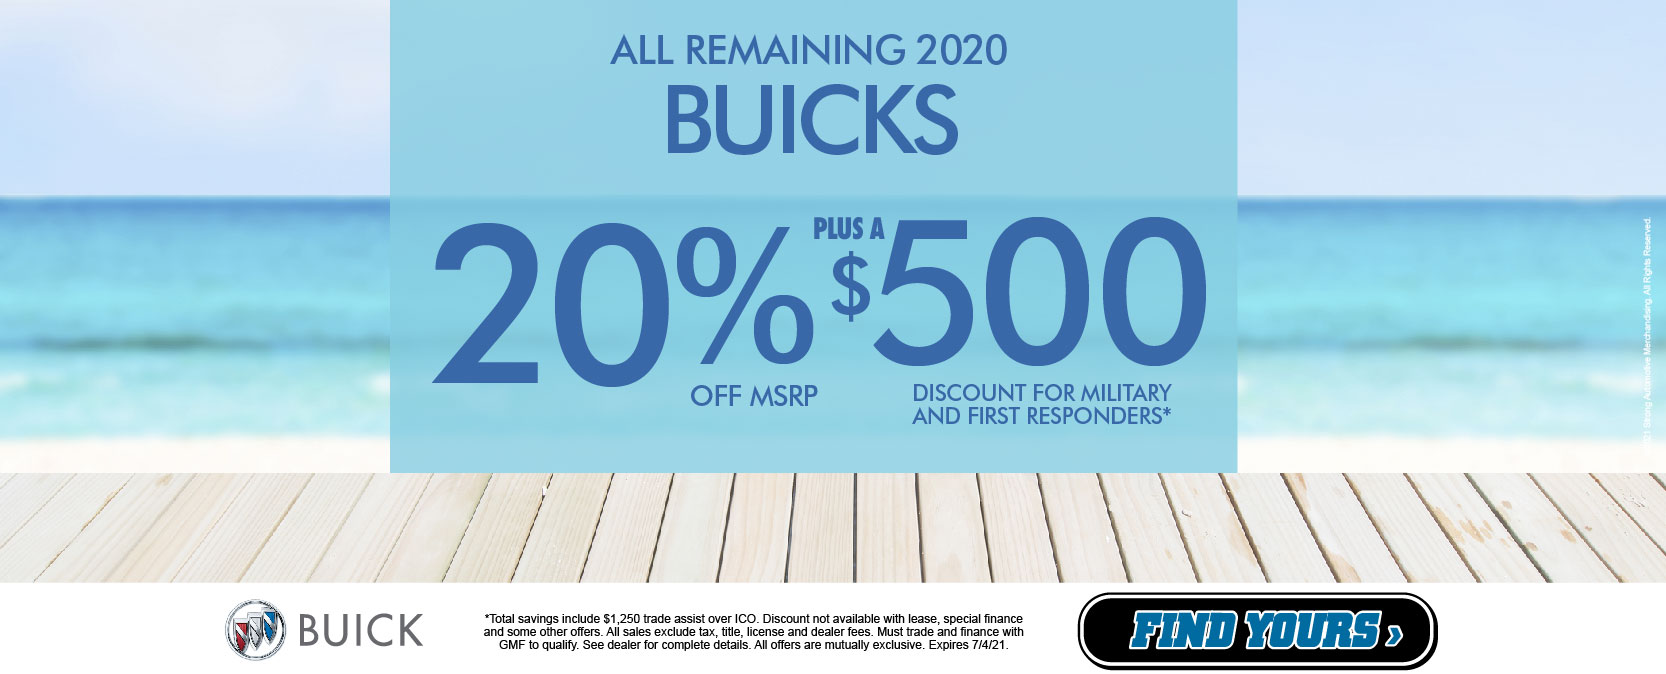 All Remaining 2020 Buicks - 20% OFF MSRP